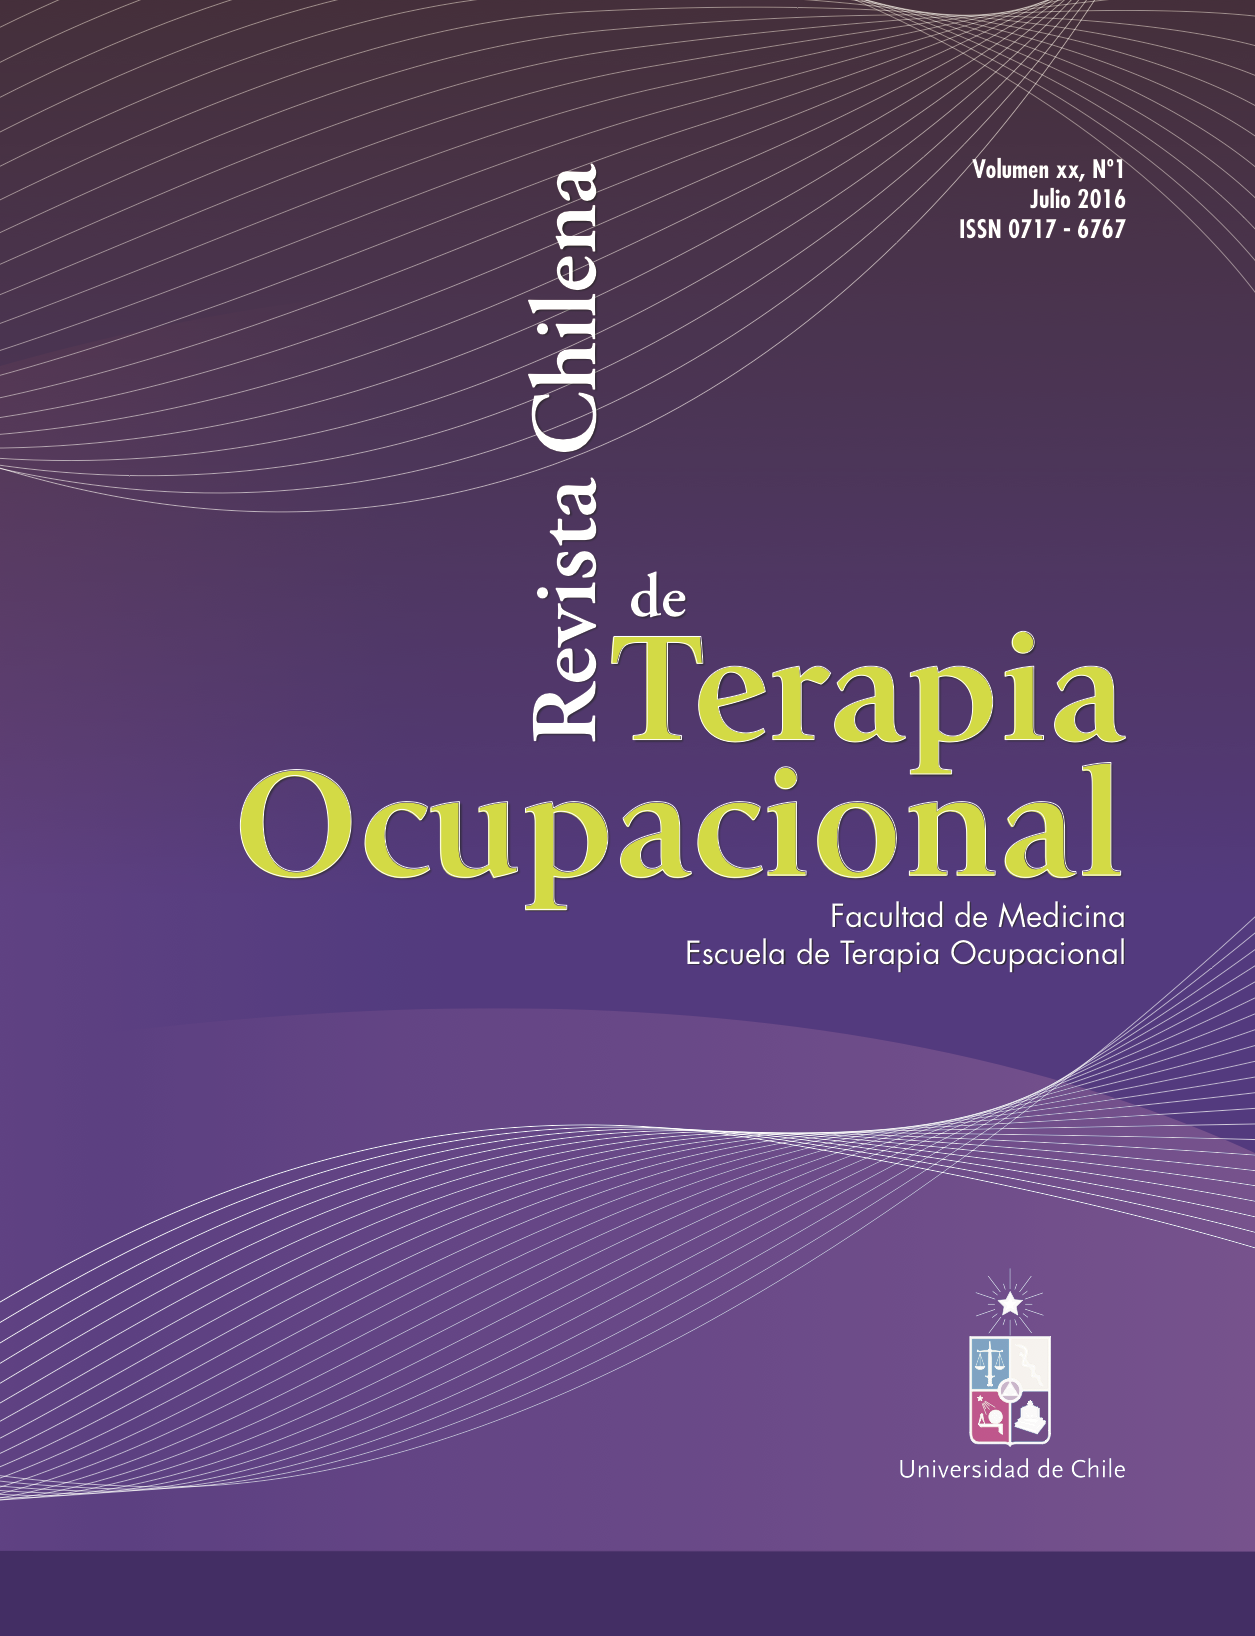 Revista Chilena de Terapia Ocupacional